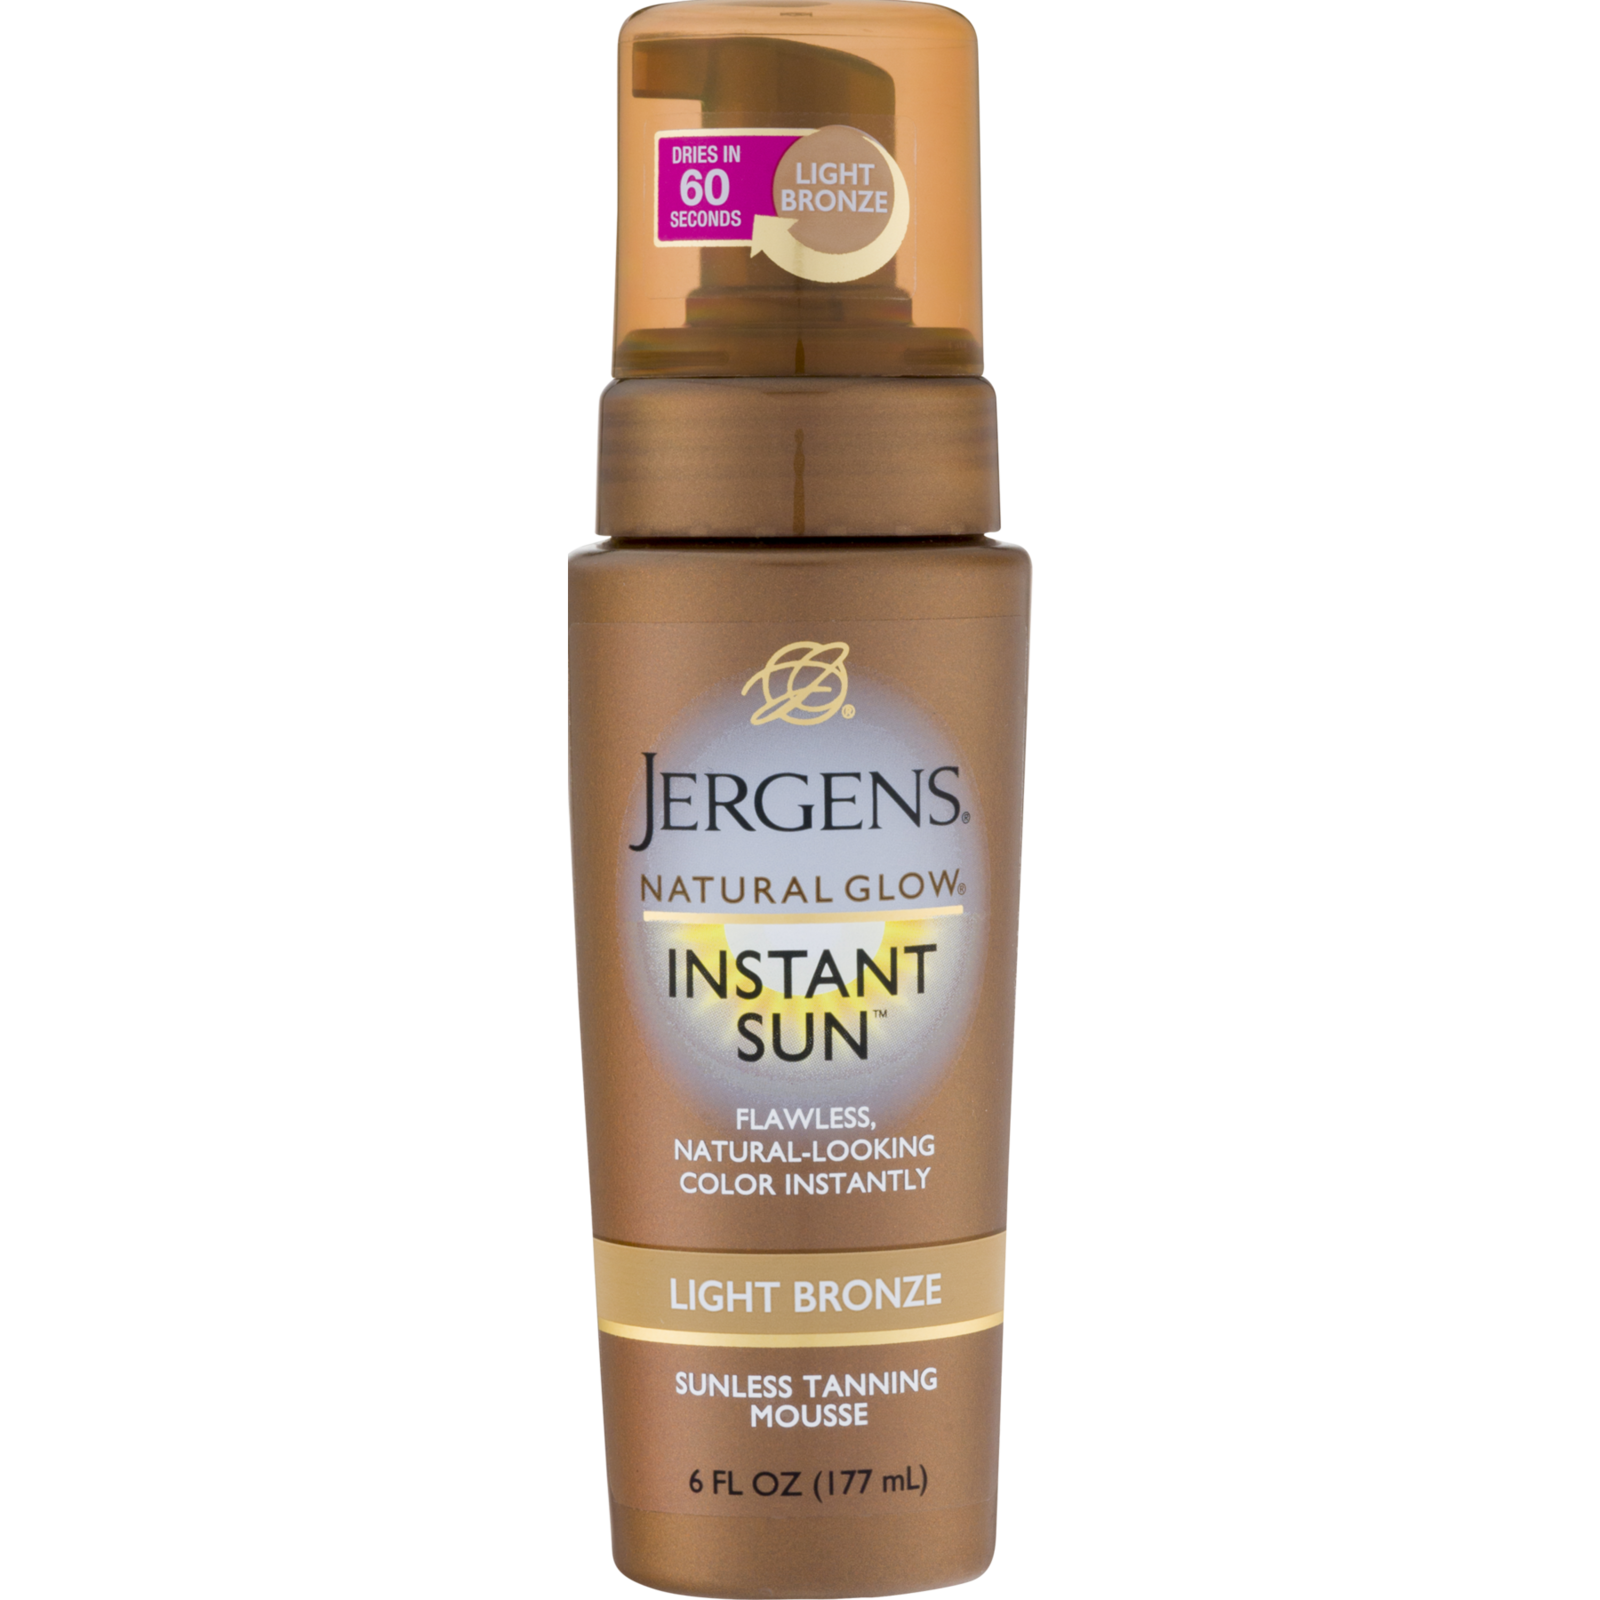 21 Of The Best Self-Tanners And Bronzers At Walmart